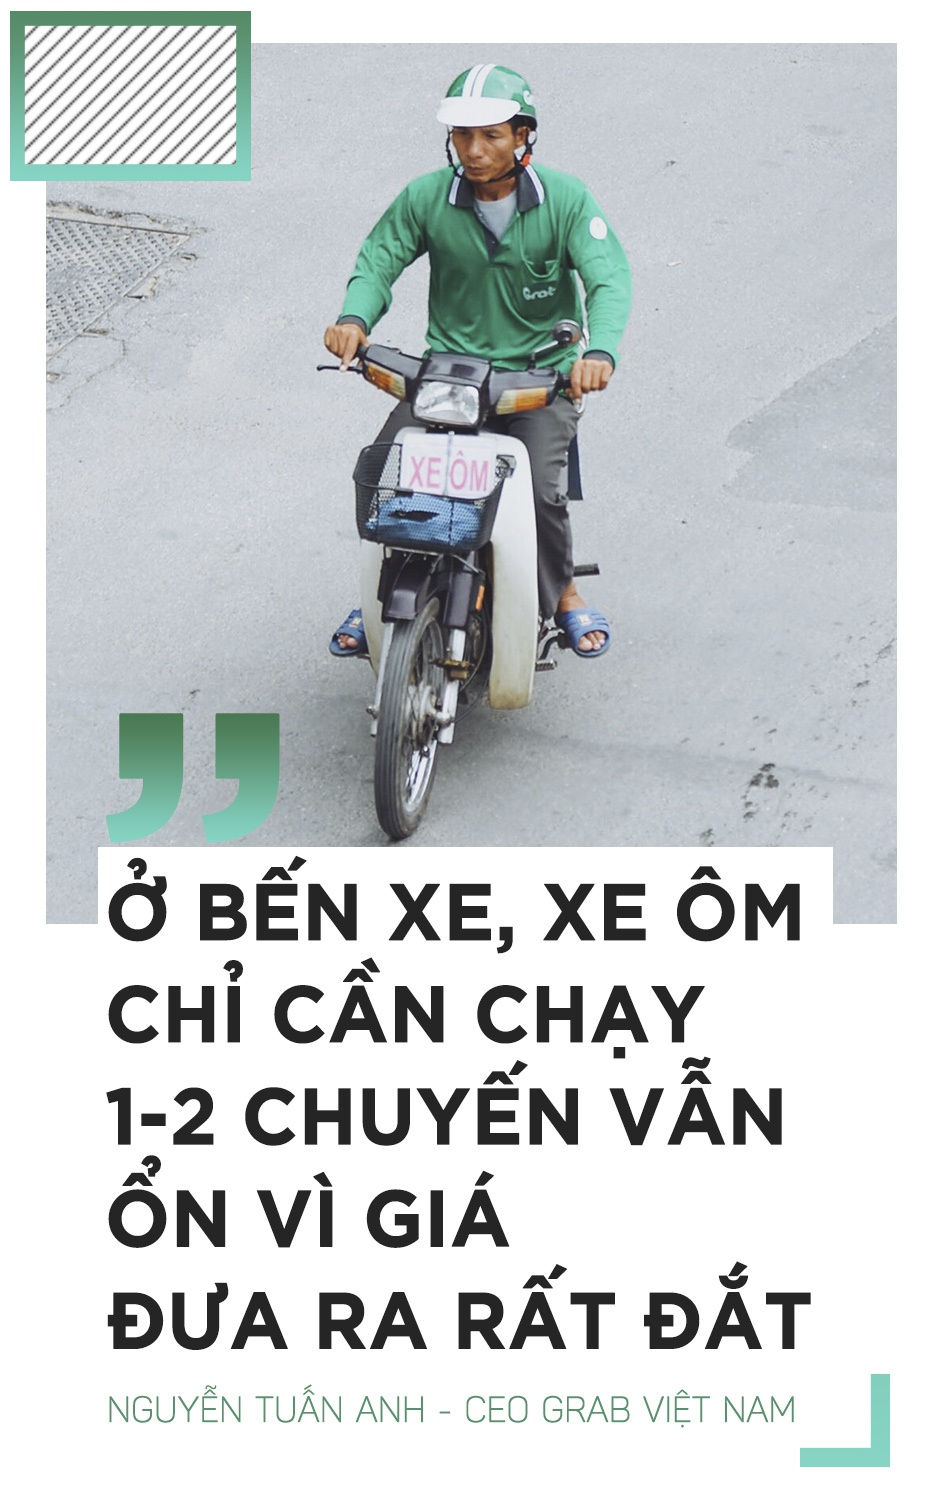 Uber, Grab voi cuoc chien gia cuoc xe om hinh anh 5